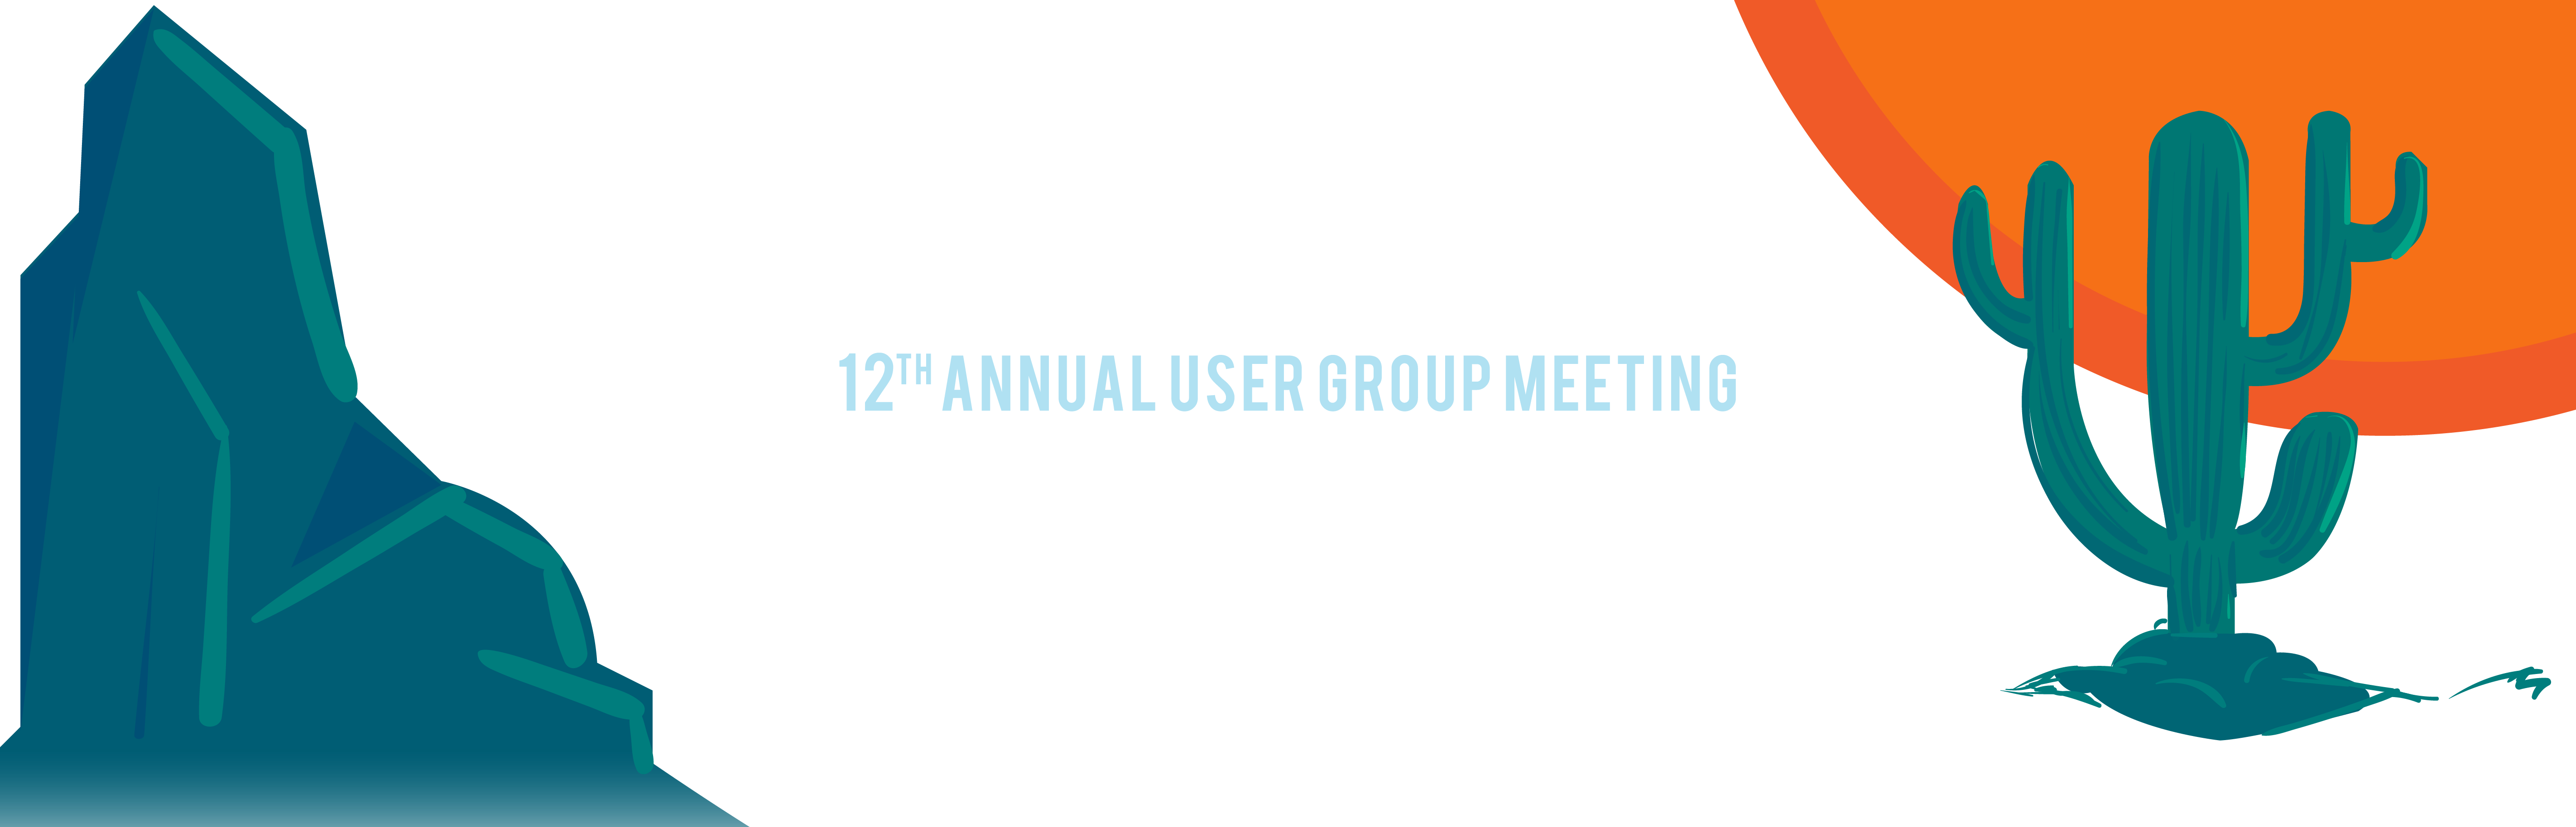 iRODS UGM 2020, Hosted by the University of Arizona, June 9-12, 2020